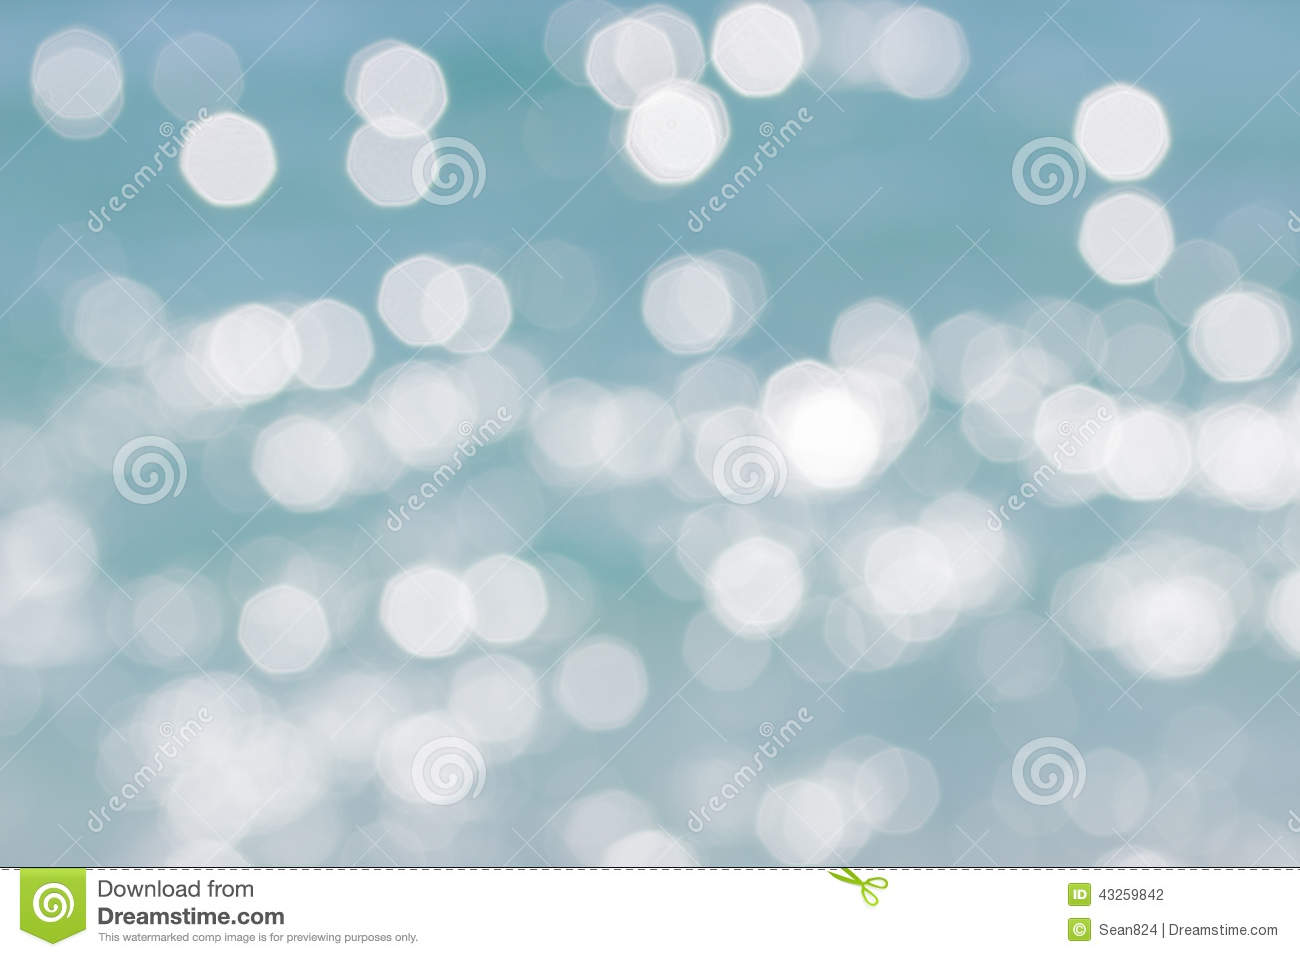 Blue disfocused abstract background